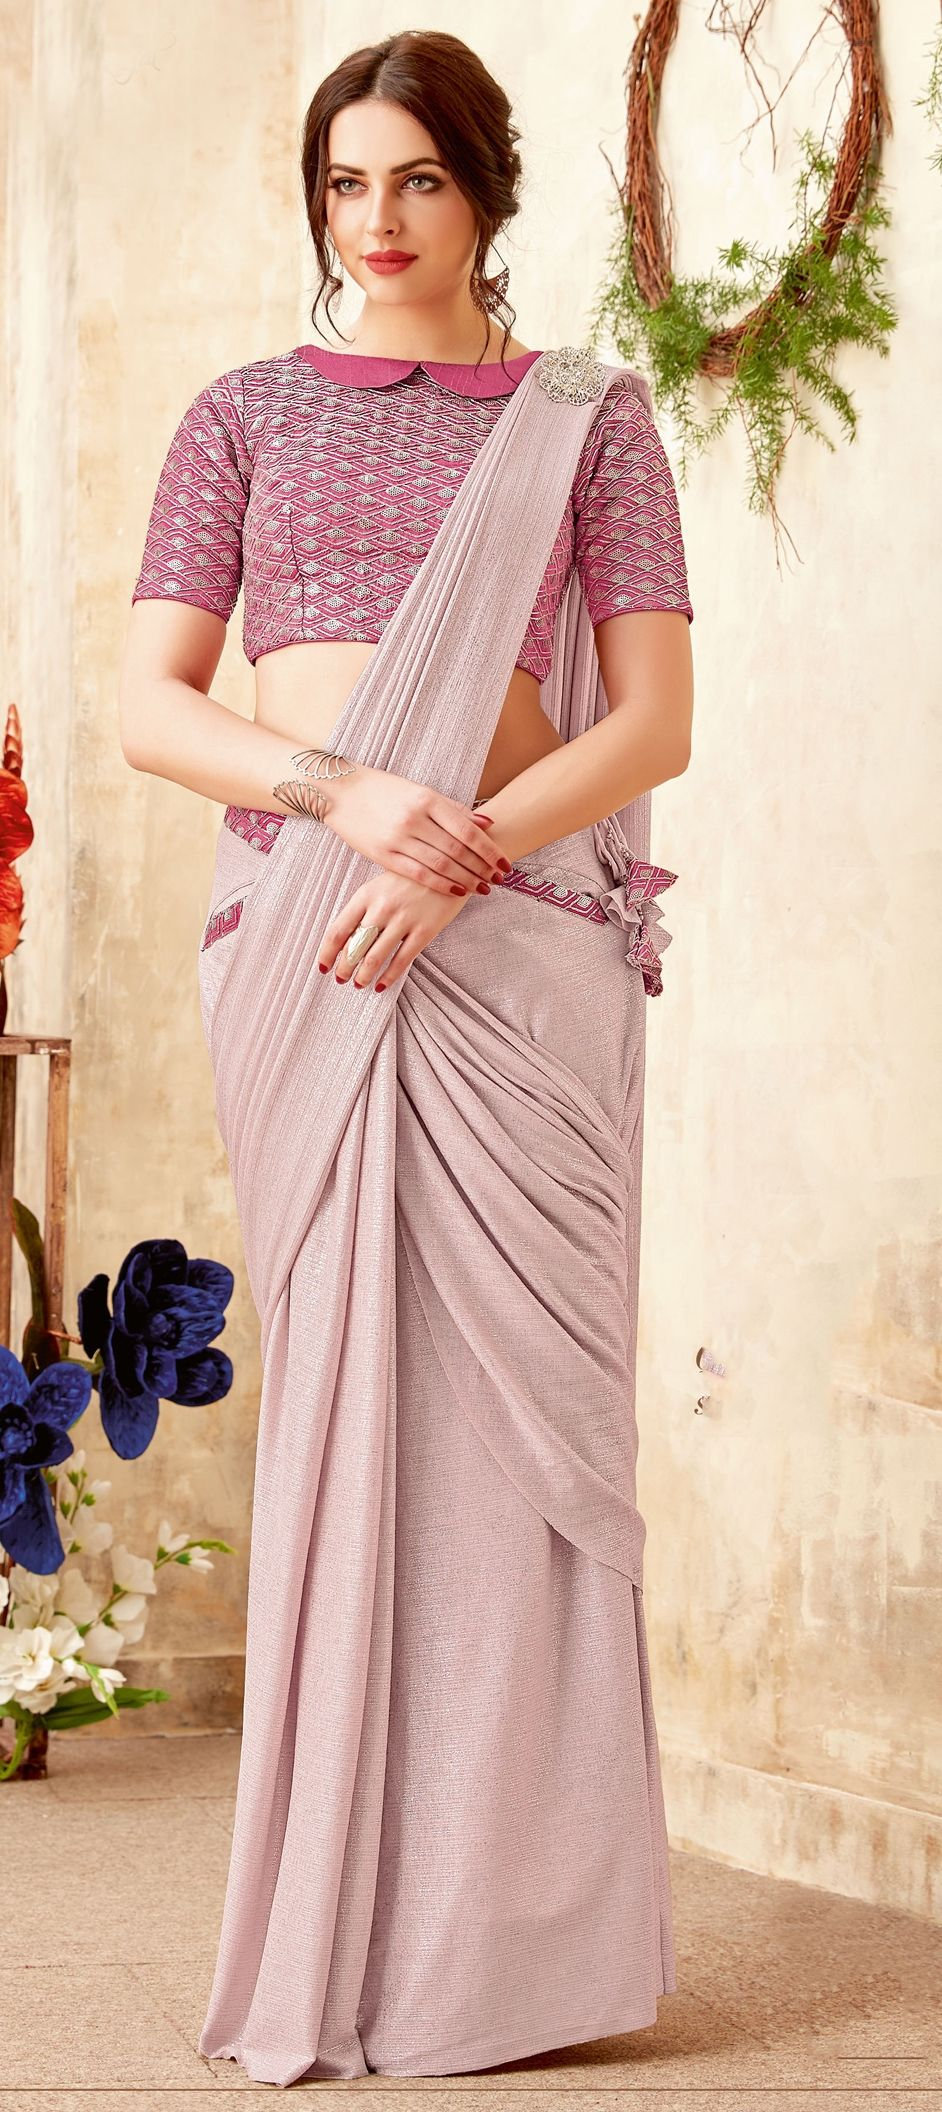 Lycra Bridal Readymade Saree In Pink And Majenta With Embroidered Work